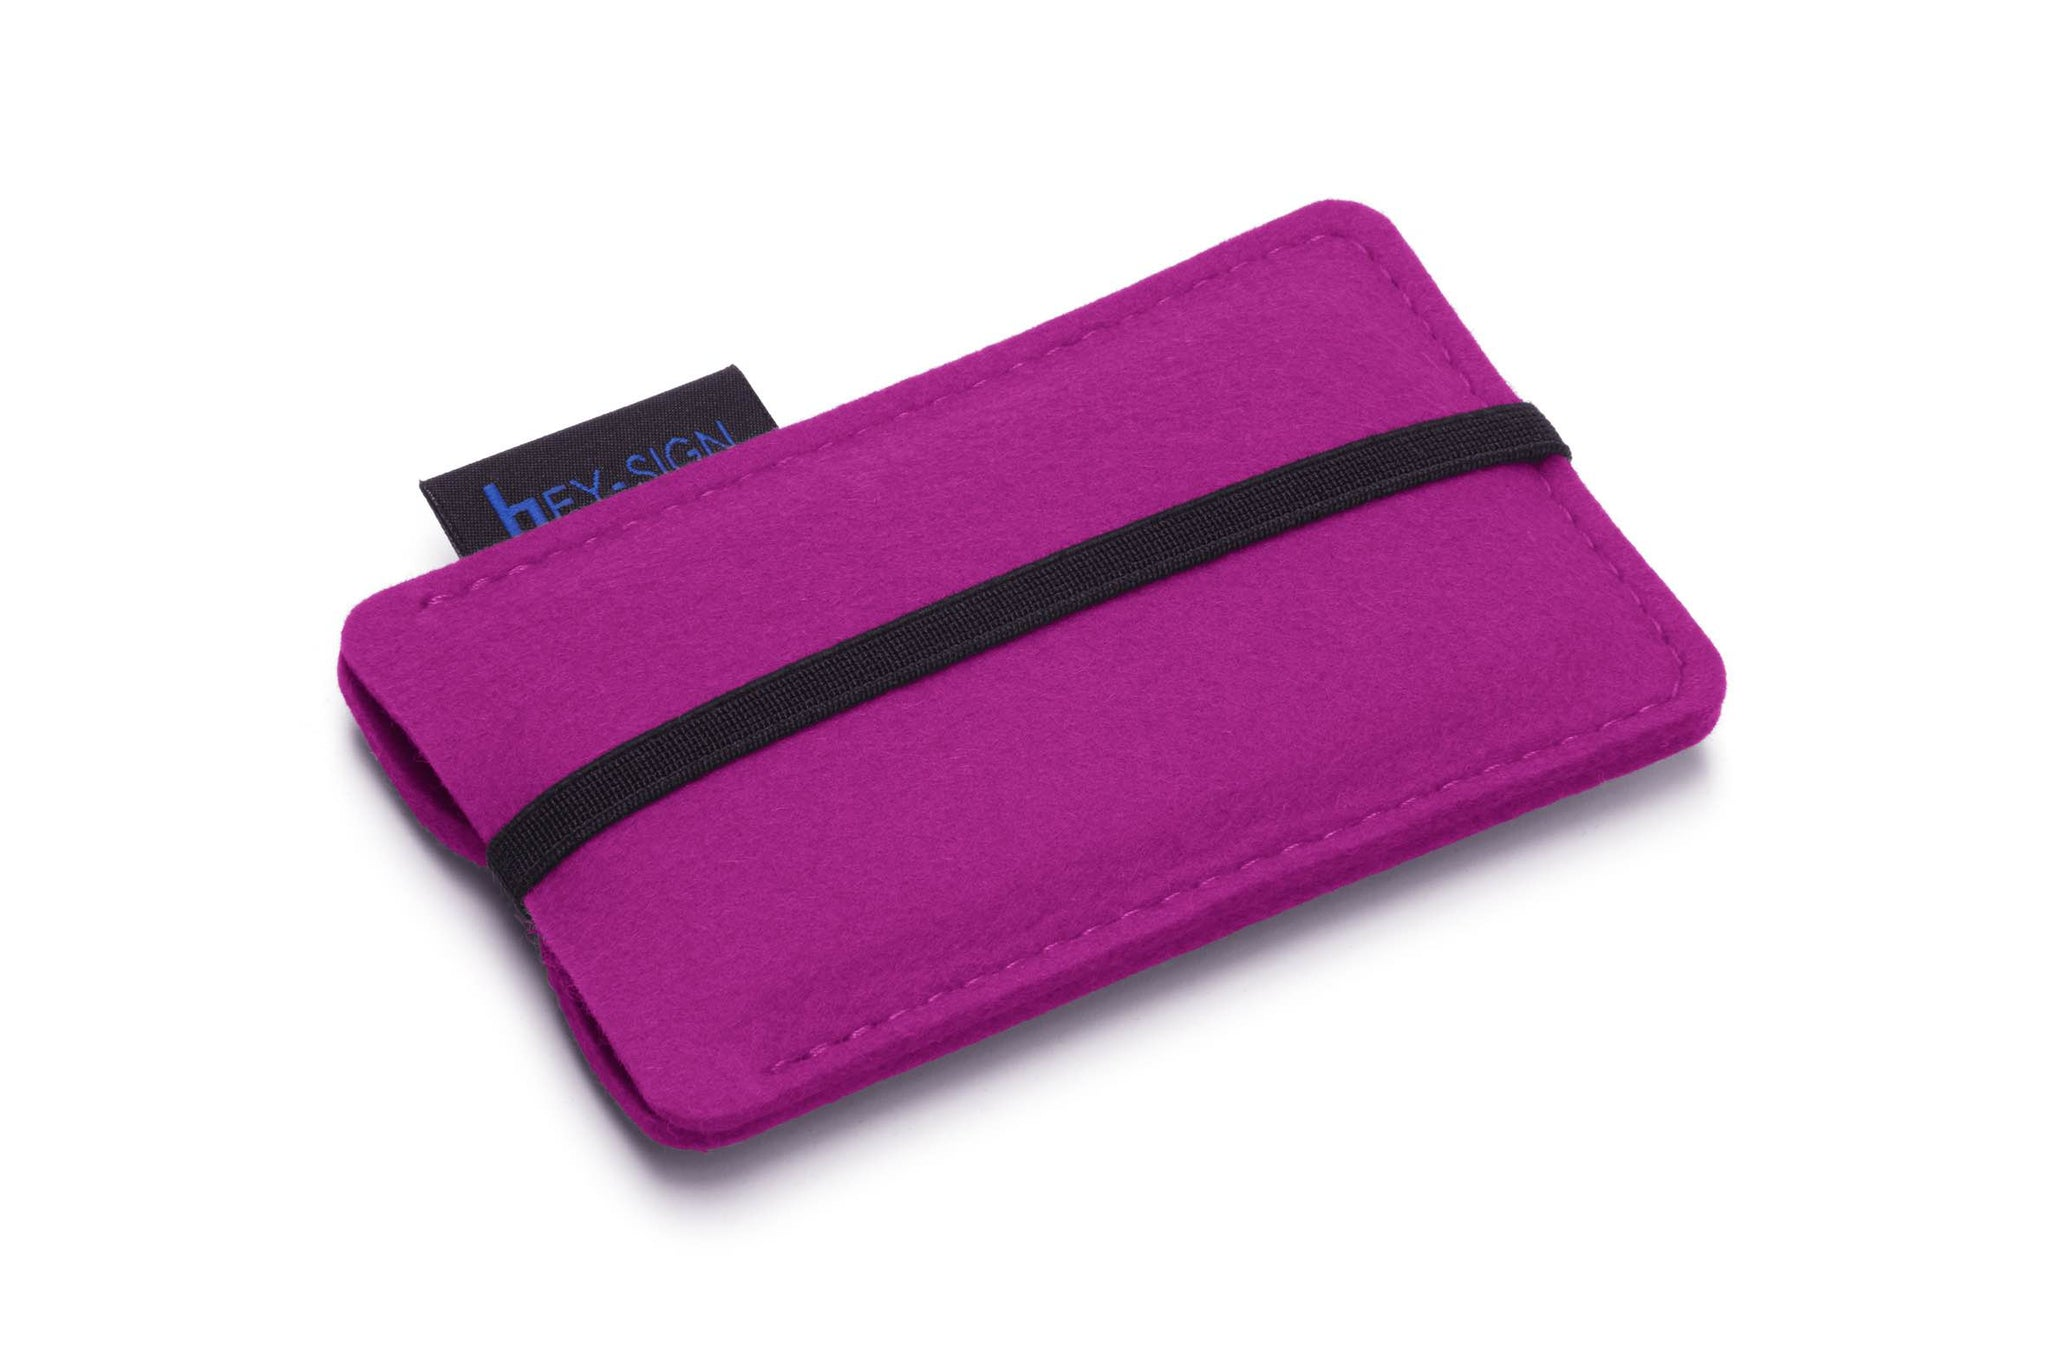 Felt Smartphone Sleeve or Pouch in Pink by Hey-Sign 301031432